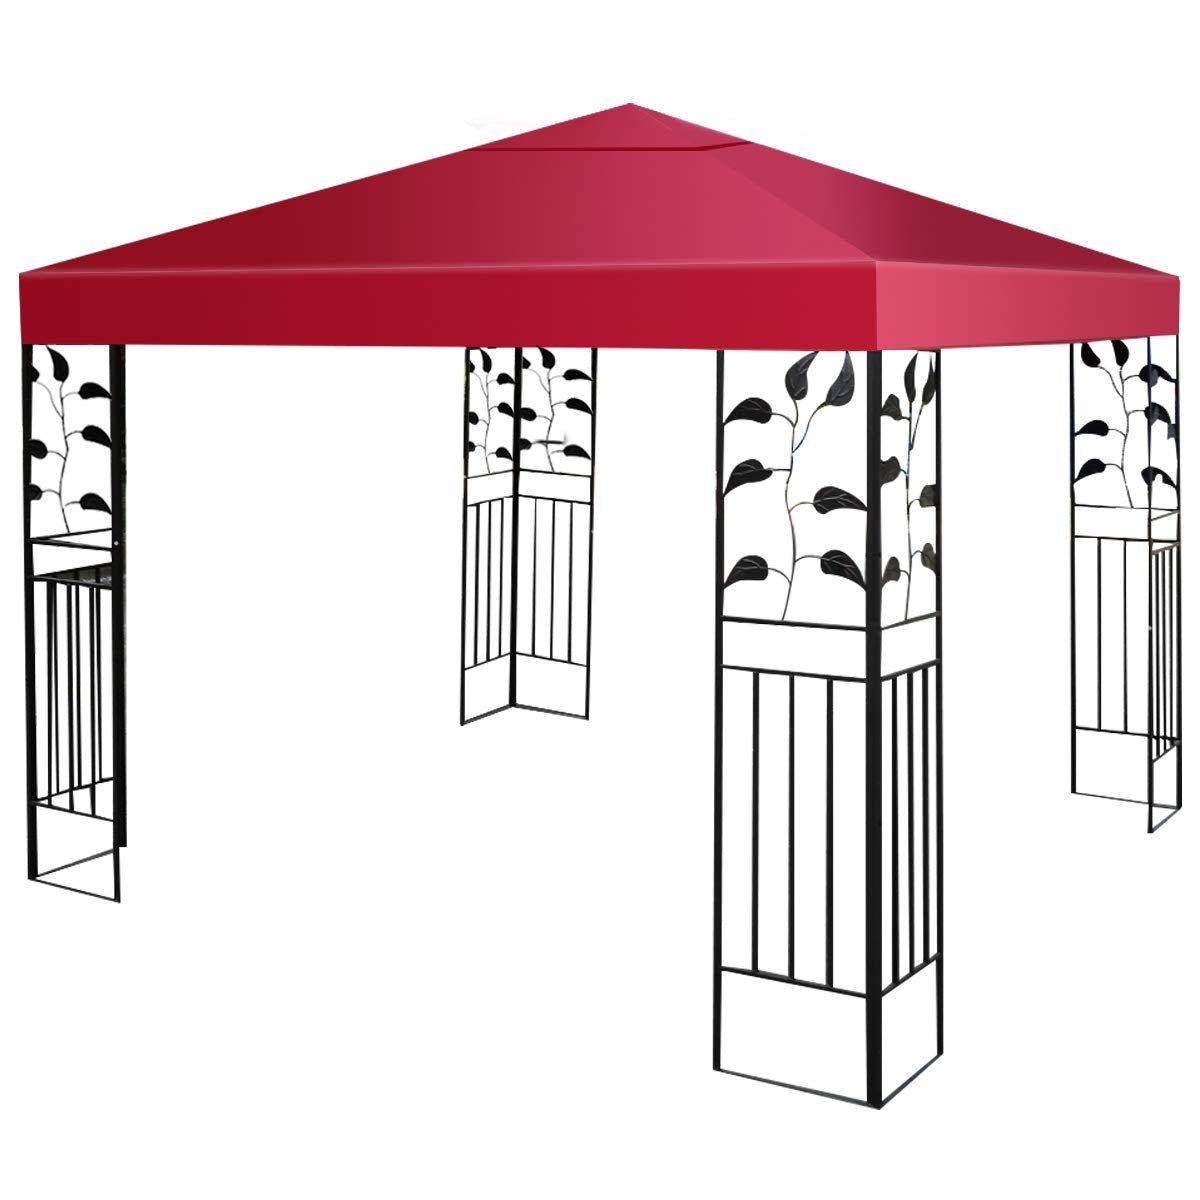 10' x 10' 1-Tier or 2-Tier 3 Colors Patio Canopy Top Replacement Cover-1 Tier Red